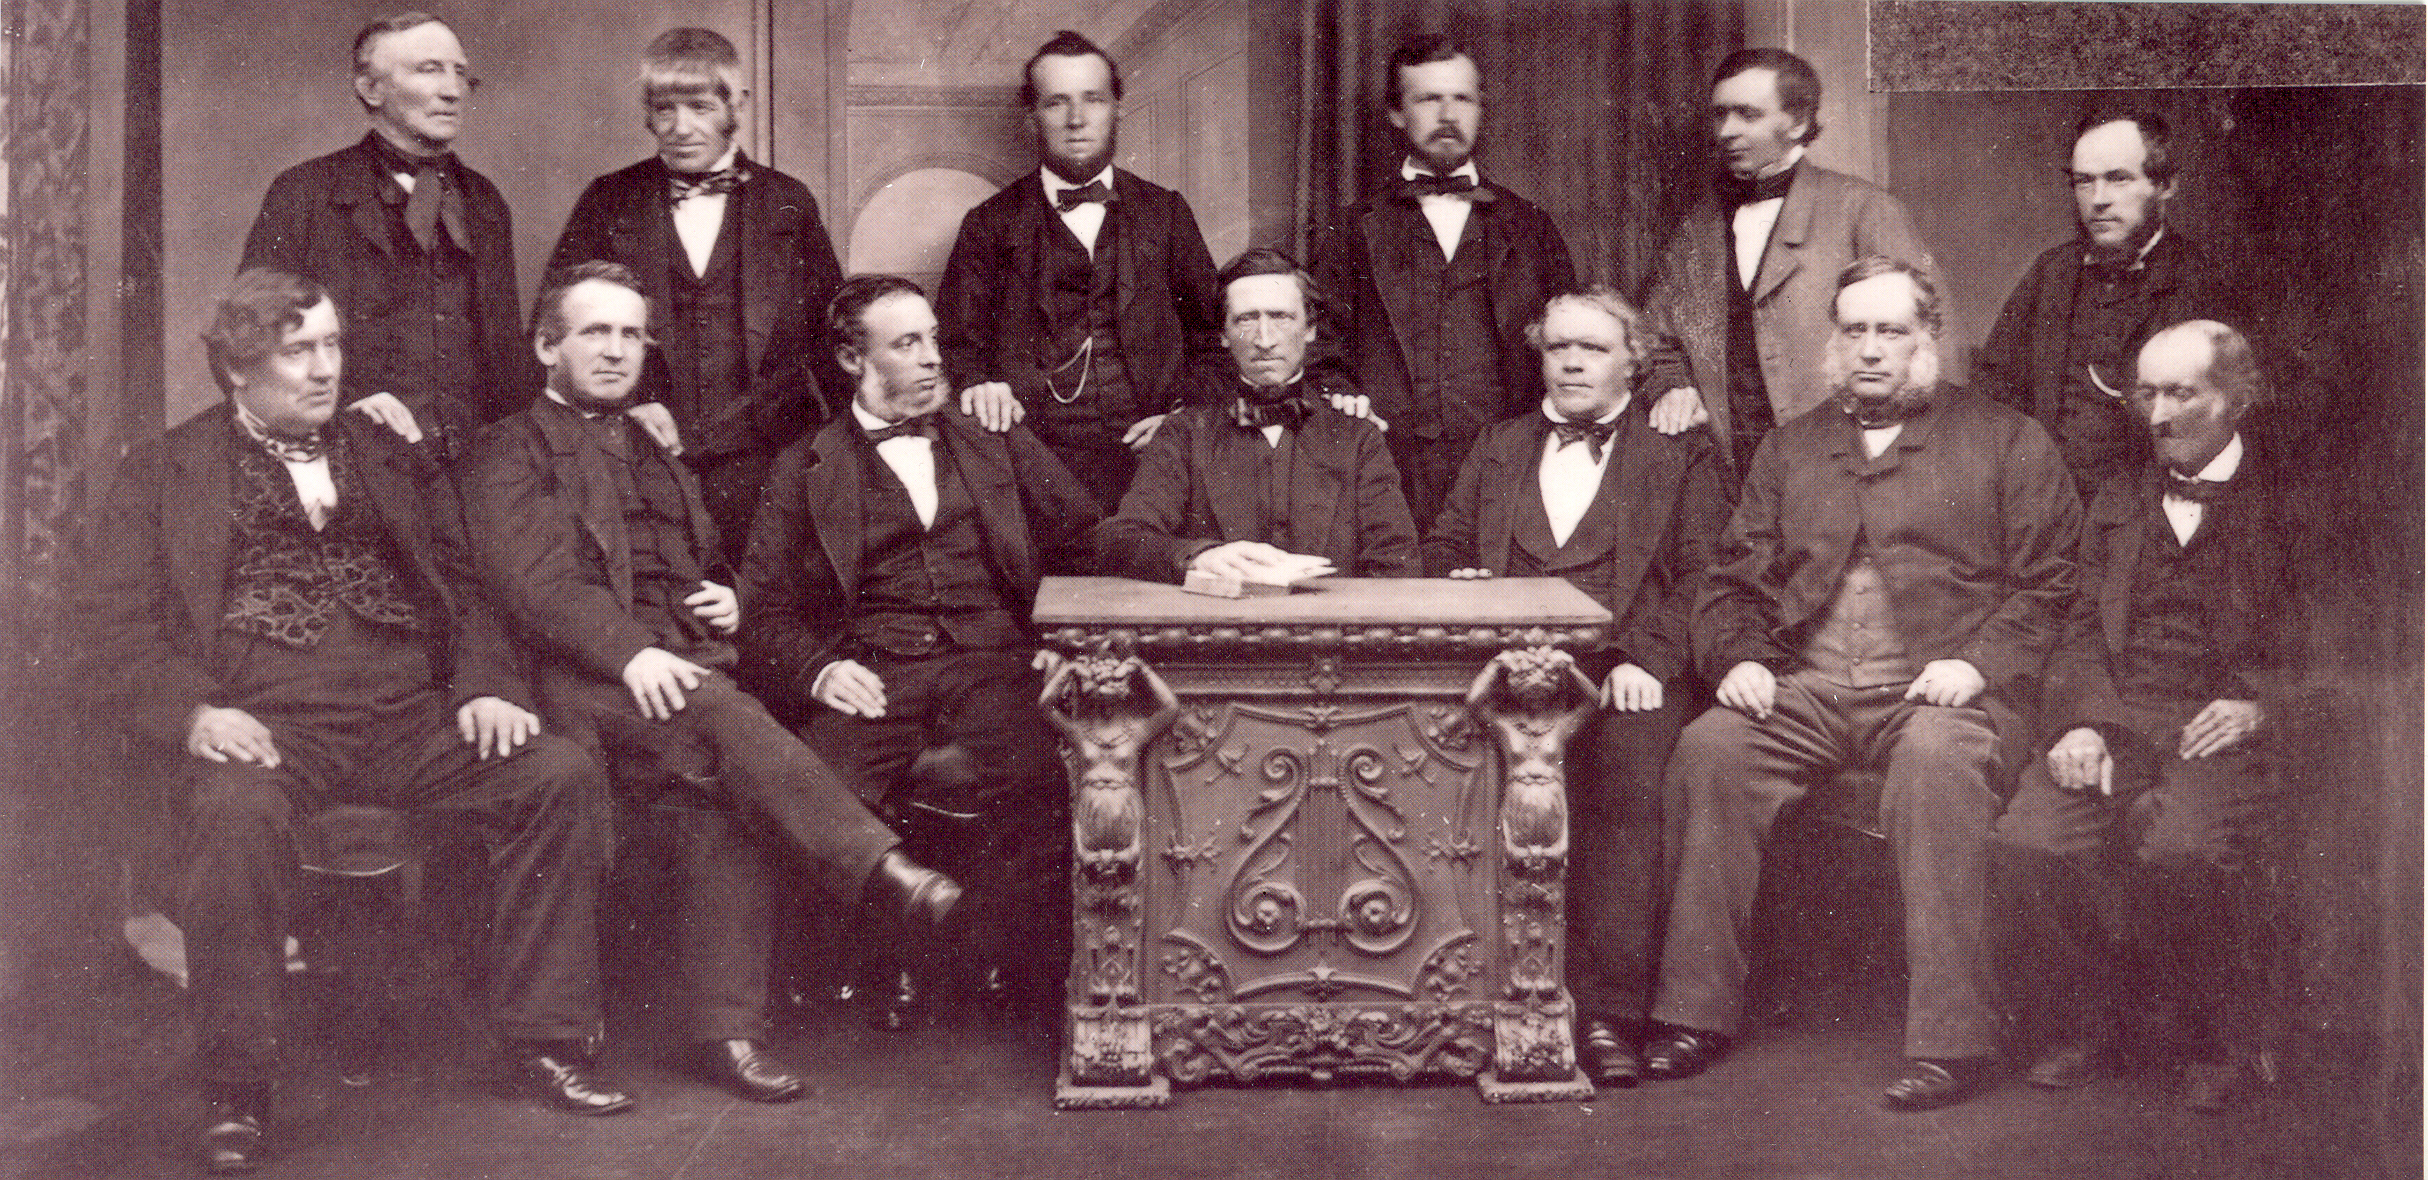 Co-operatives Rochdale Pioneers photograph of 1865